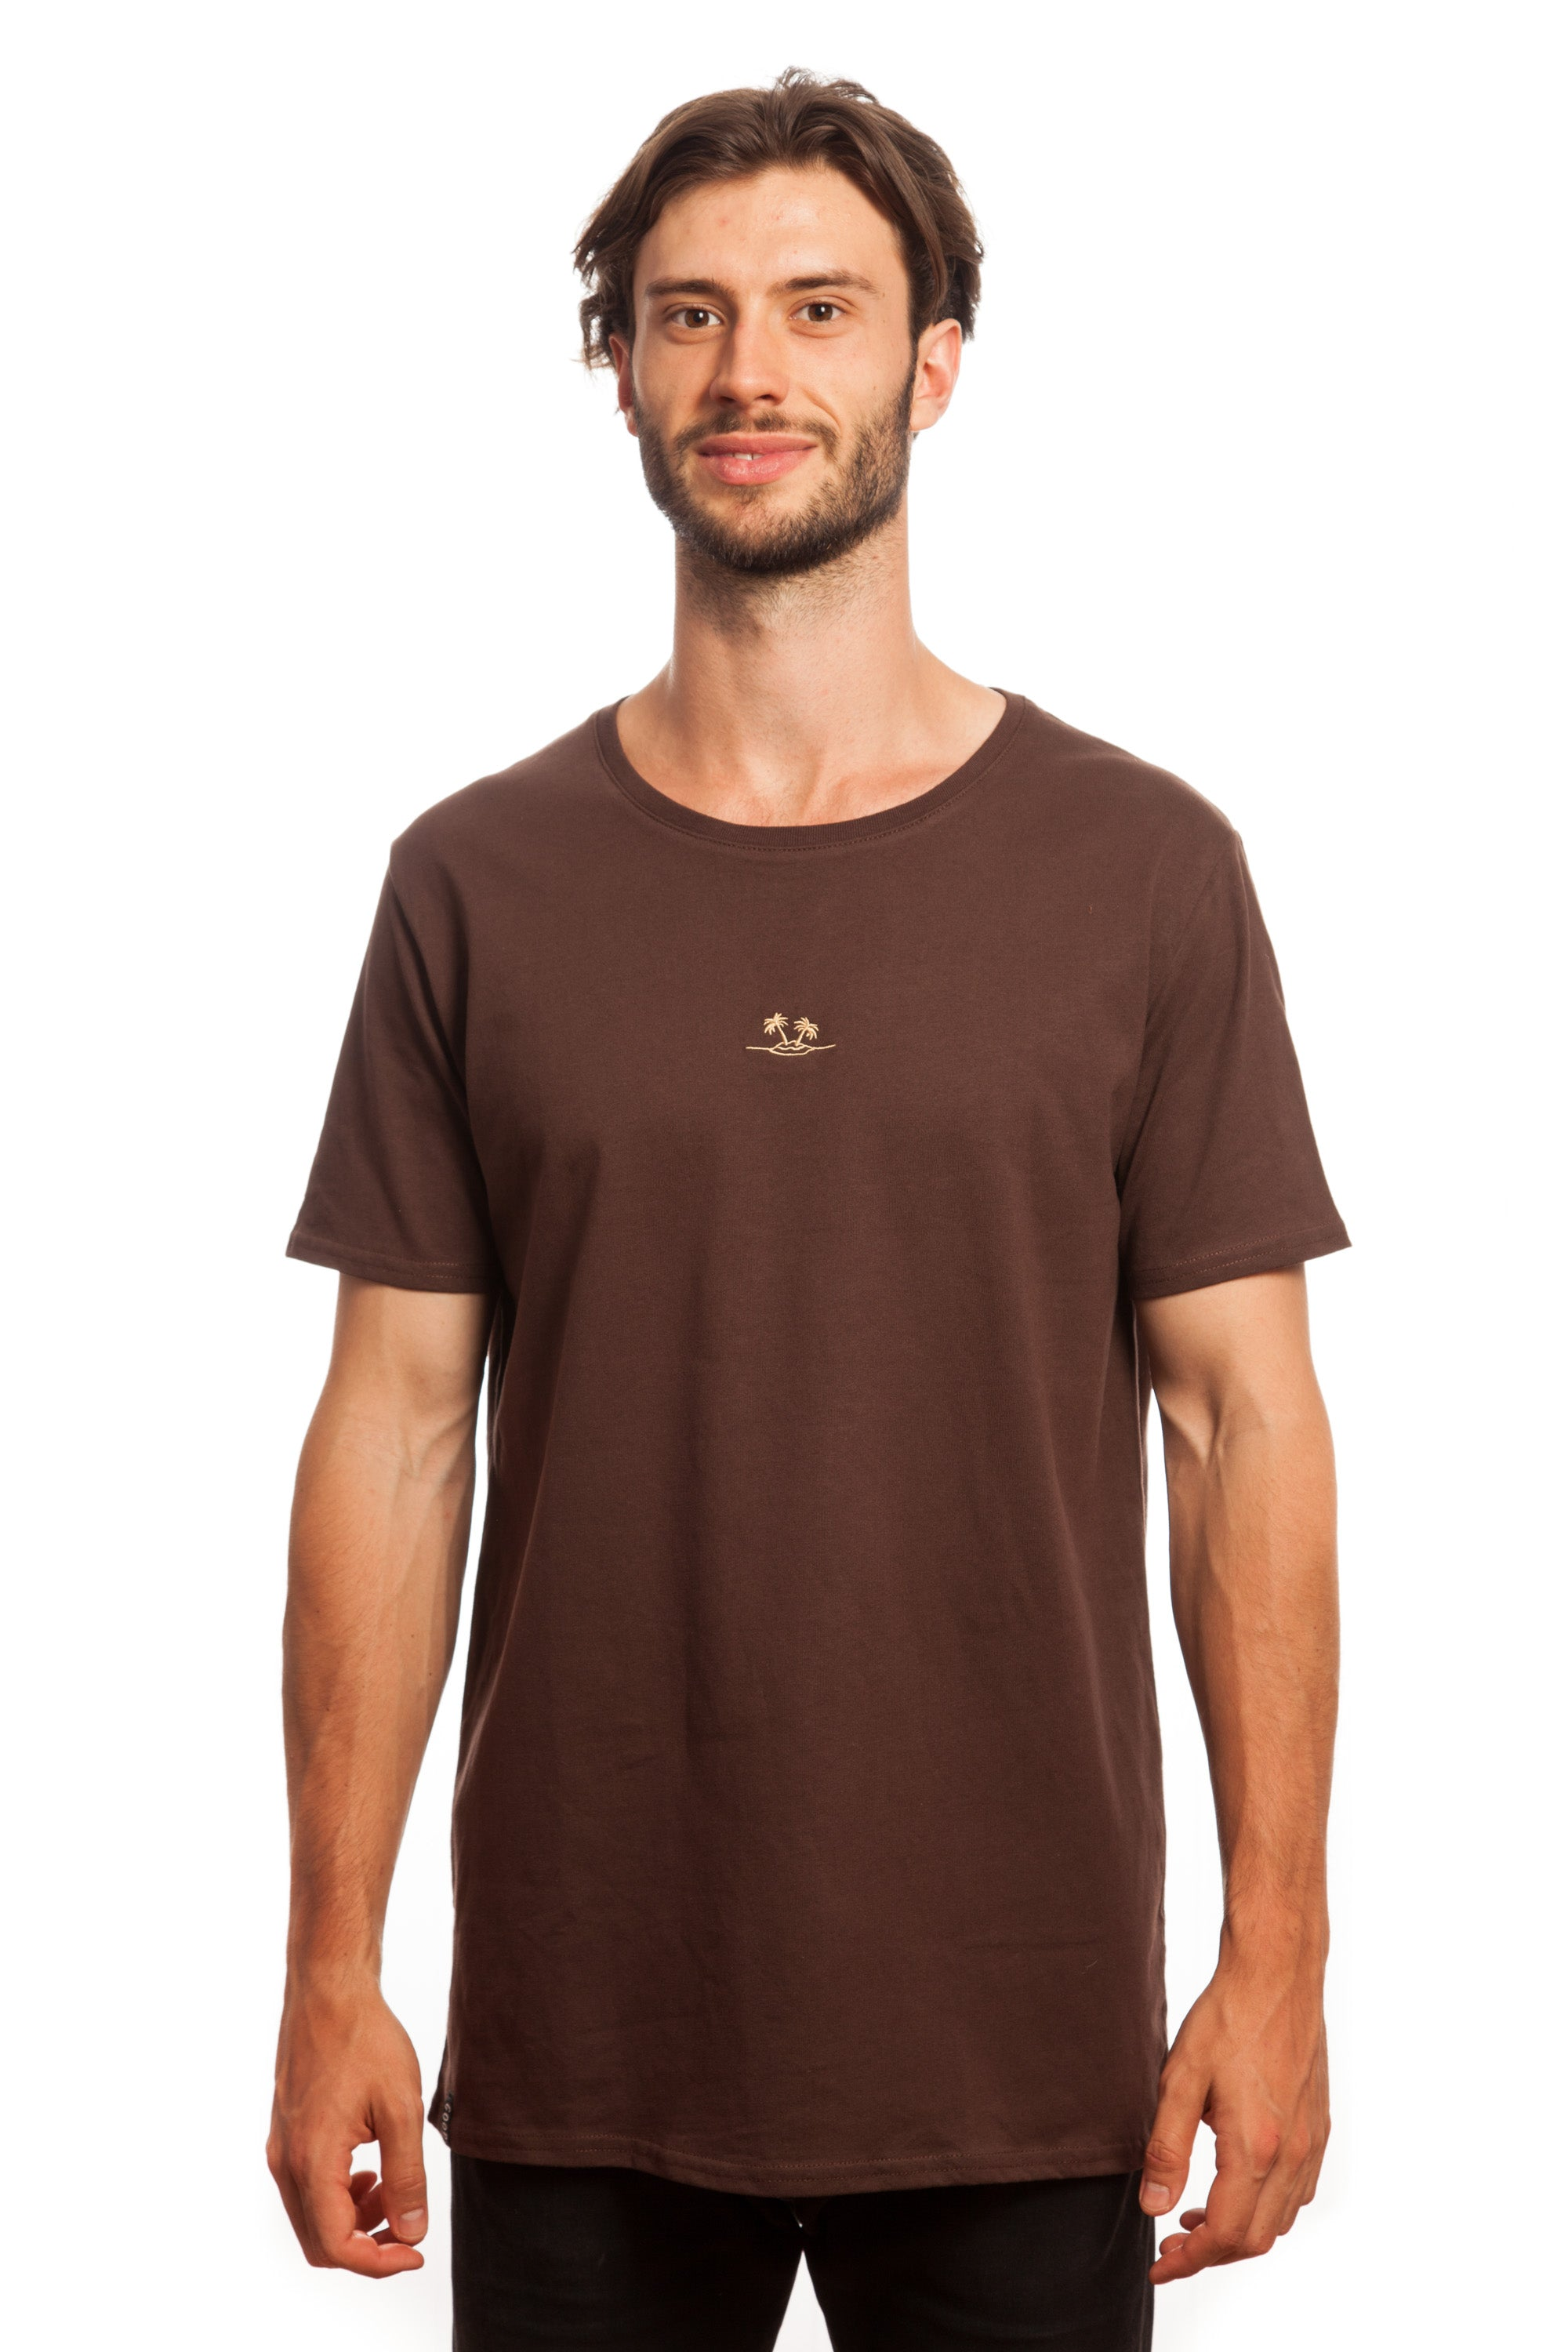 everythings good clothing co chocolate embroidered basic palm